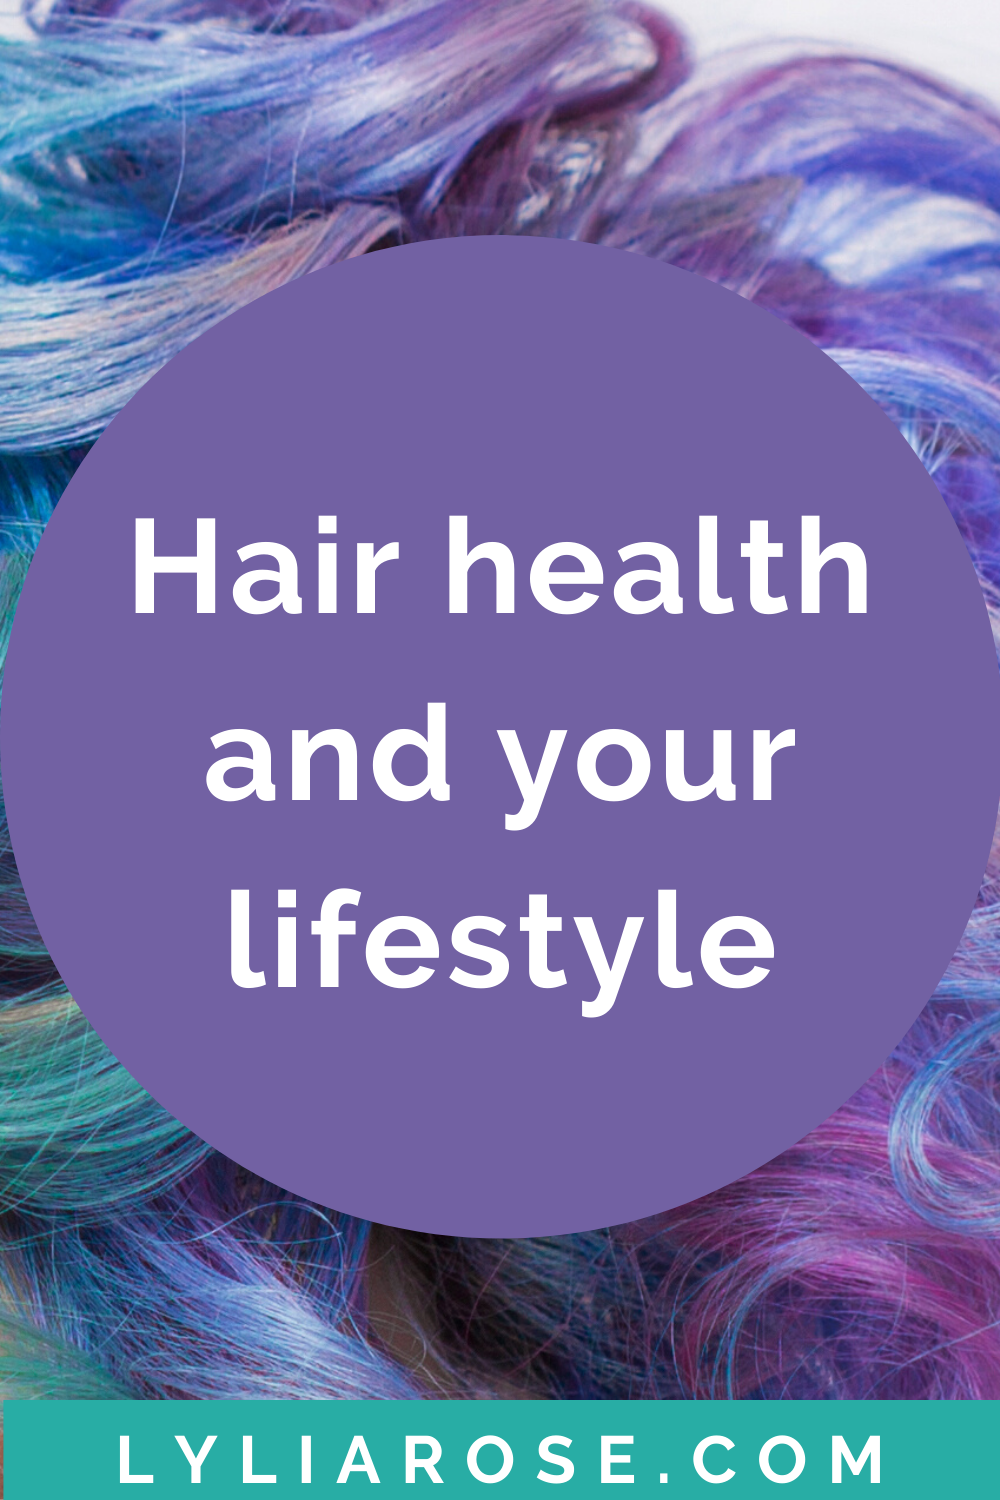 How hair health relates to a healthy lifestyle